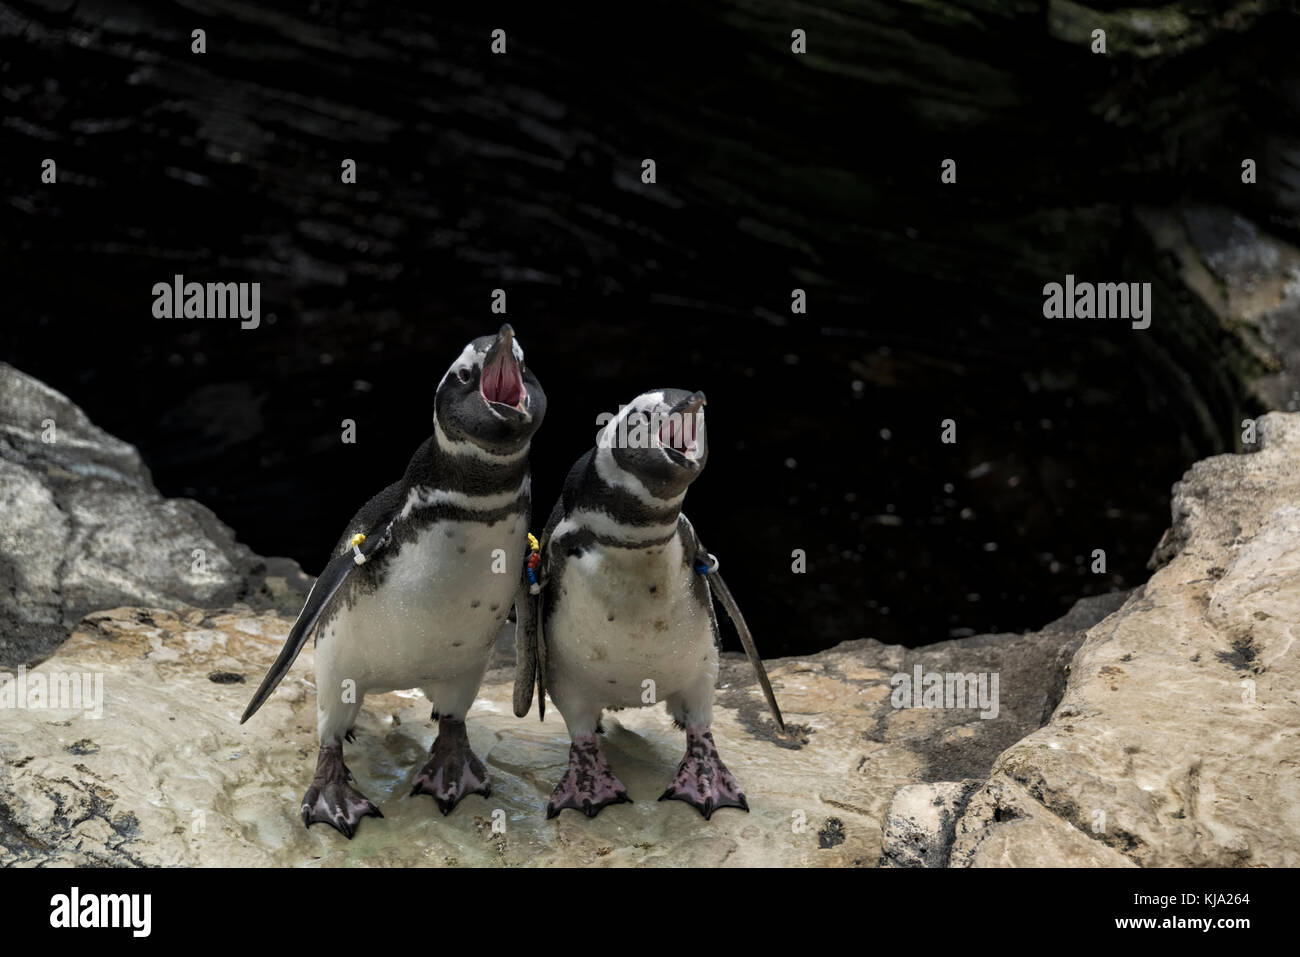 Two penguins (Magellanic penguin) - Stock Image